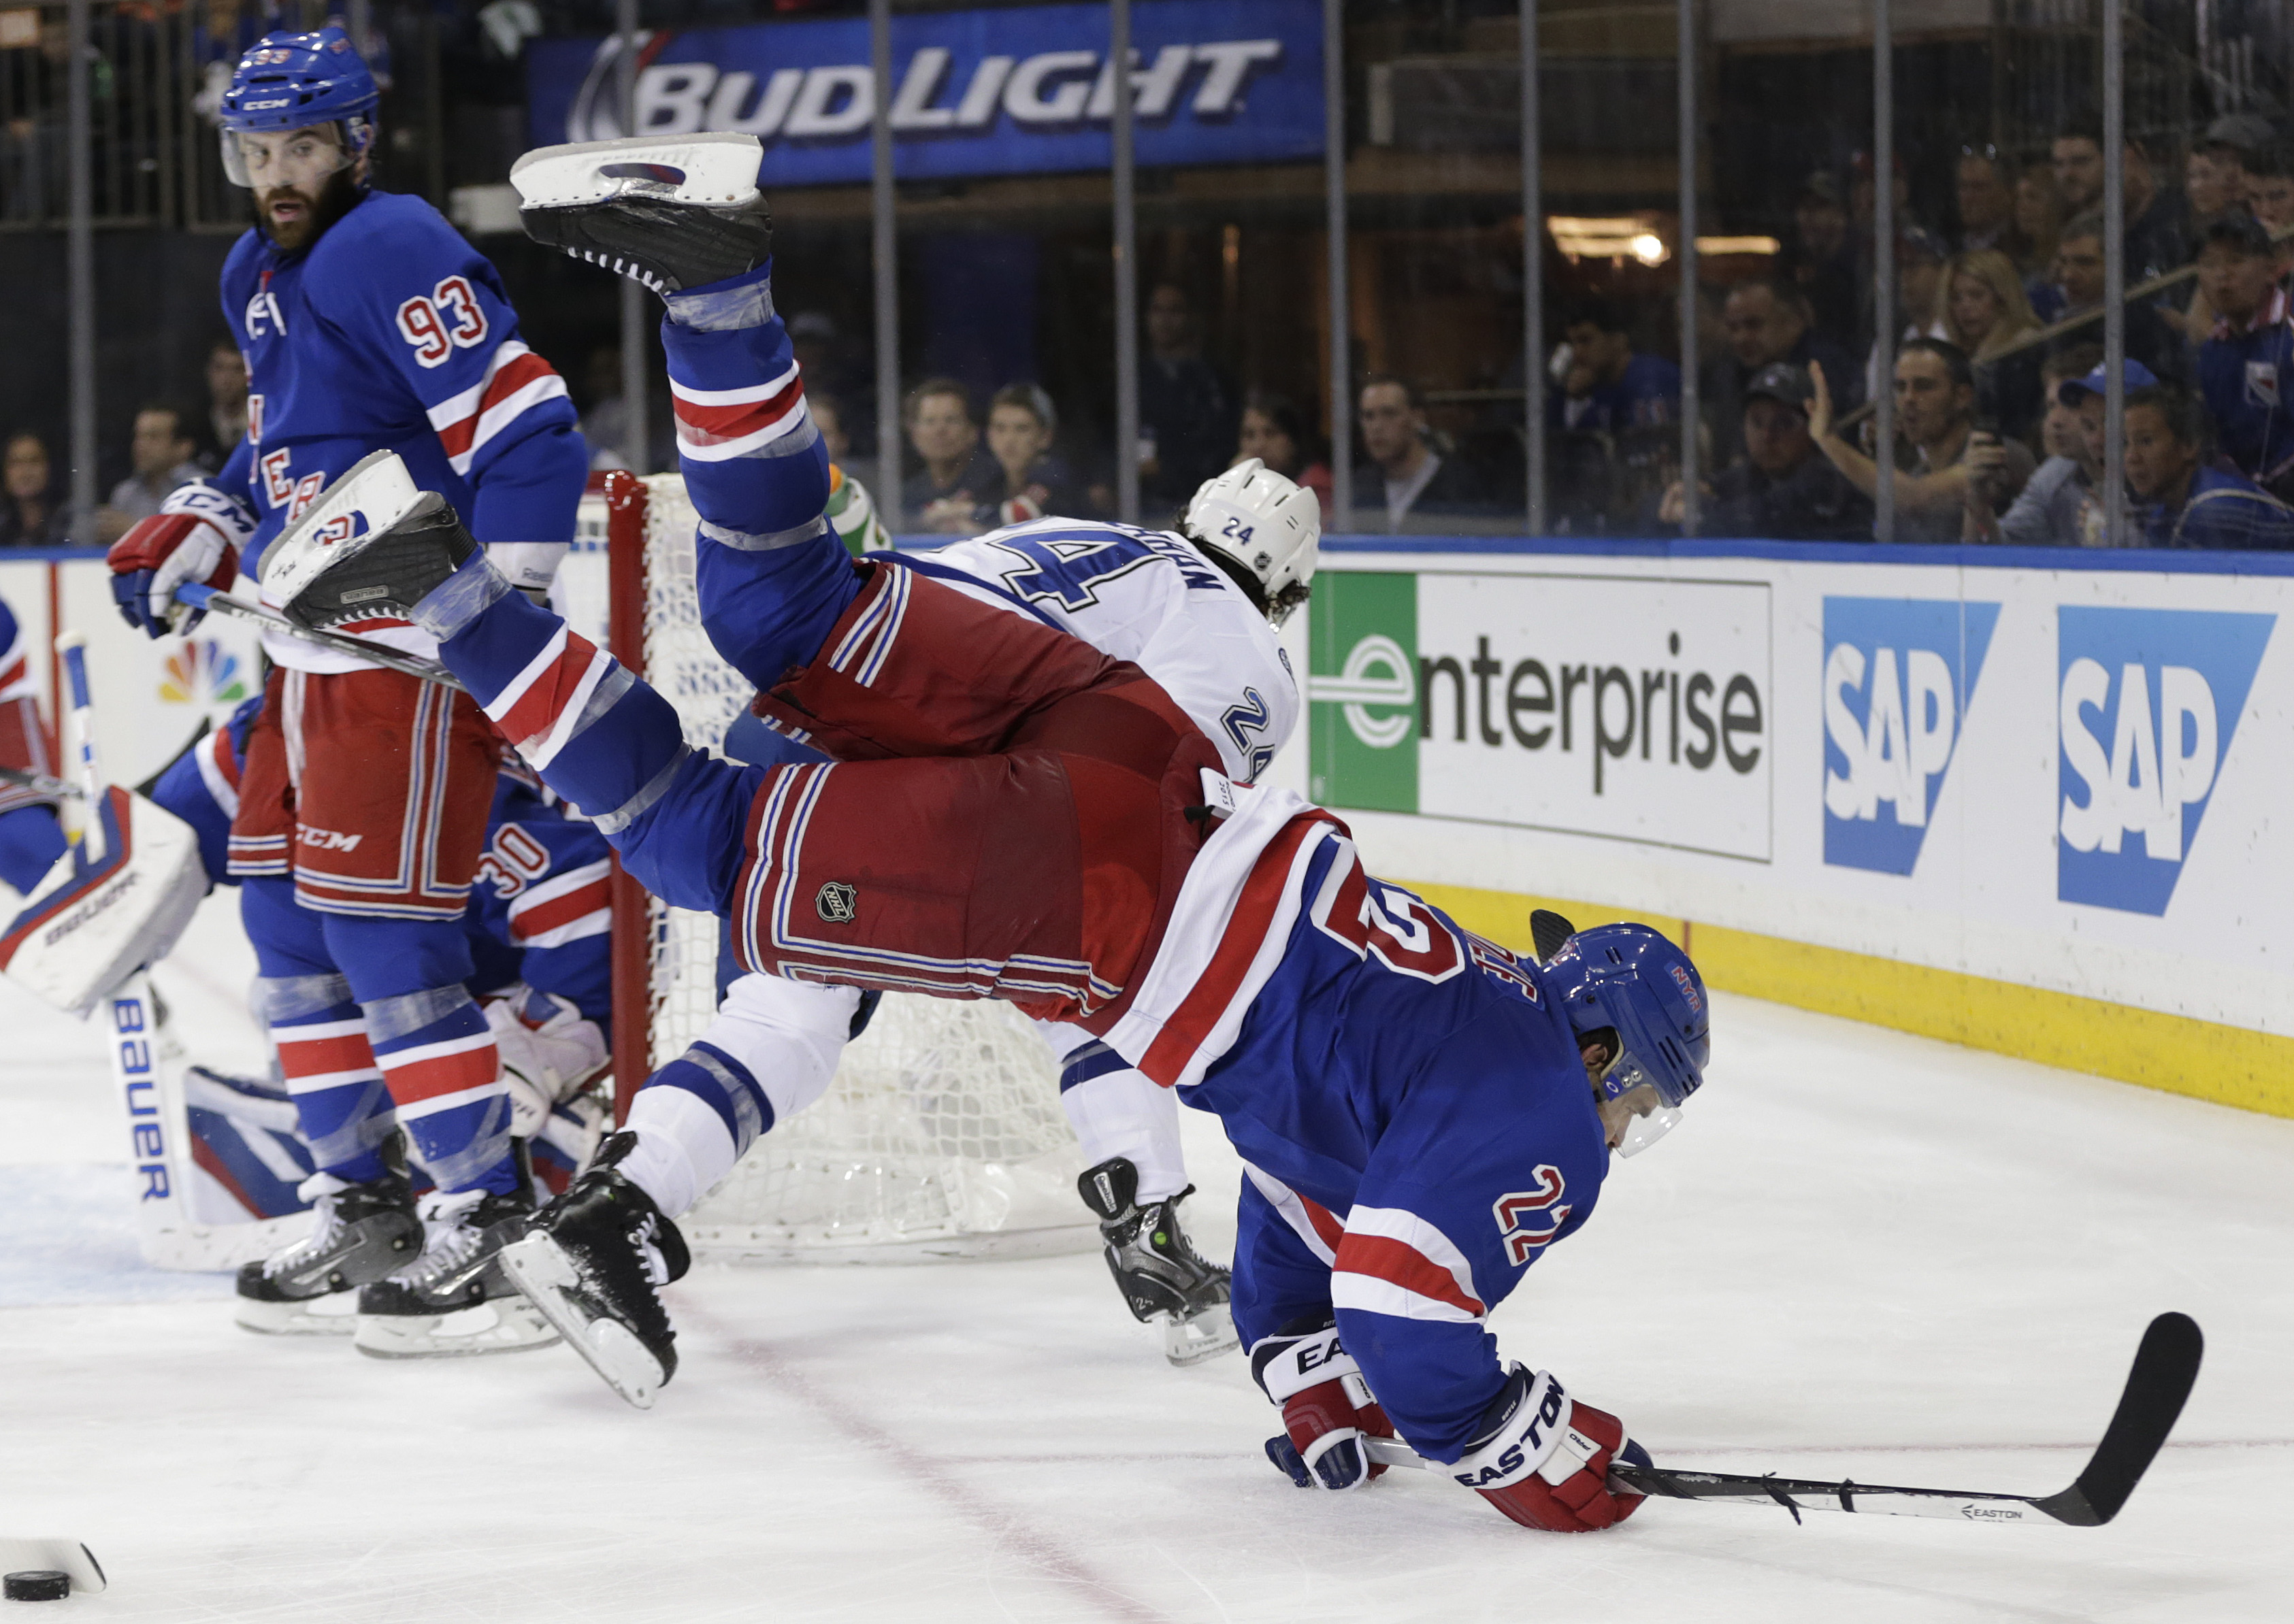 New York Rangers defenseman Dan Boyle (22) collides with Tampa Bay Lightning right wing Ryan Callahan (24) during the third period of Game 5 of the Eastern Conference final during the NHL hockey Stanley Cup playoffs, Sunday, May 24, 2015, in New York. The